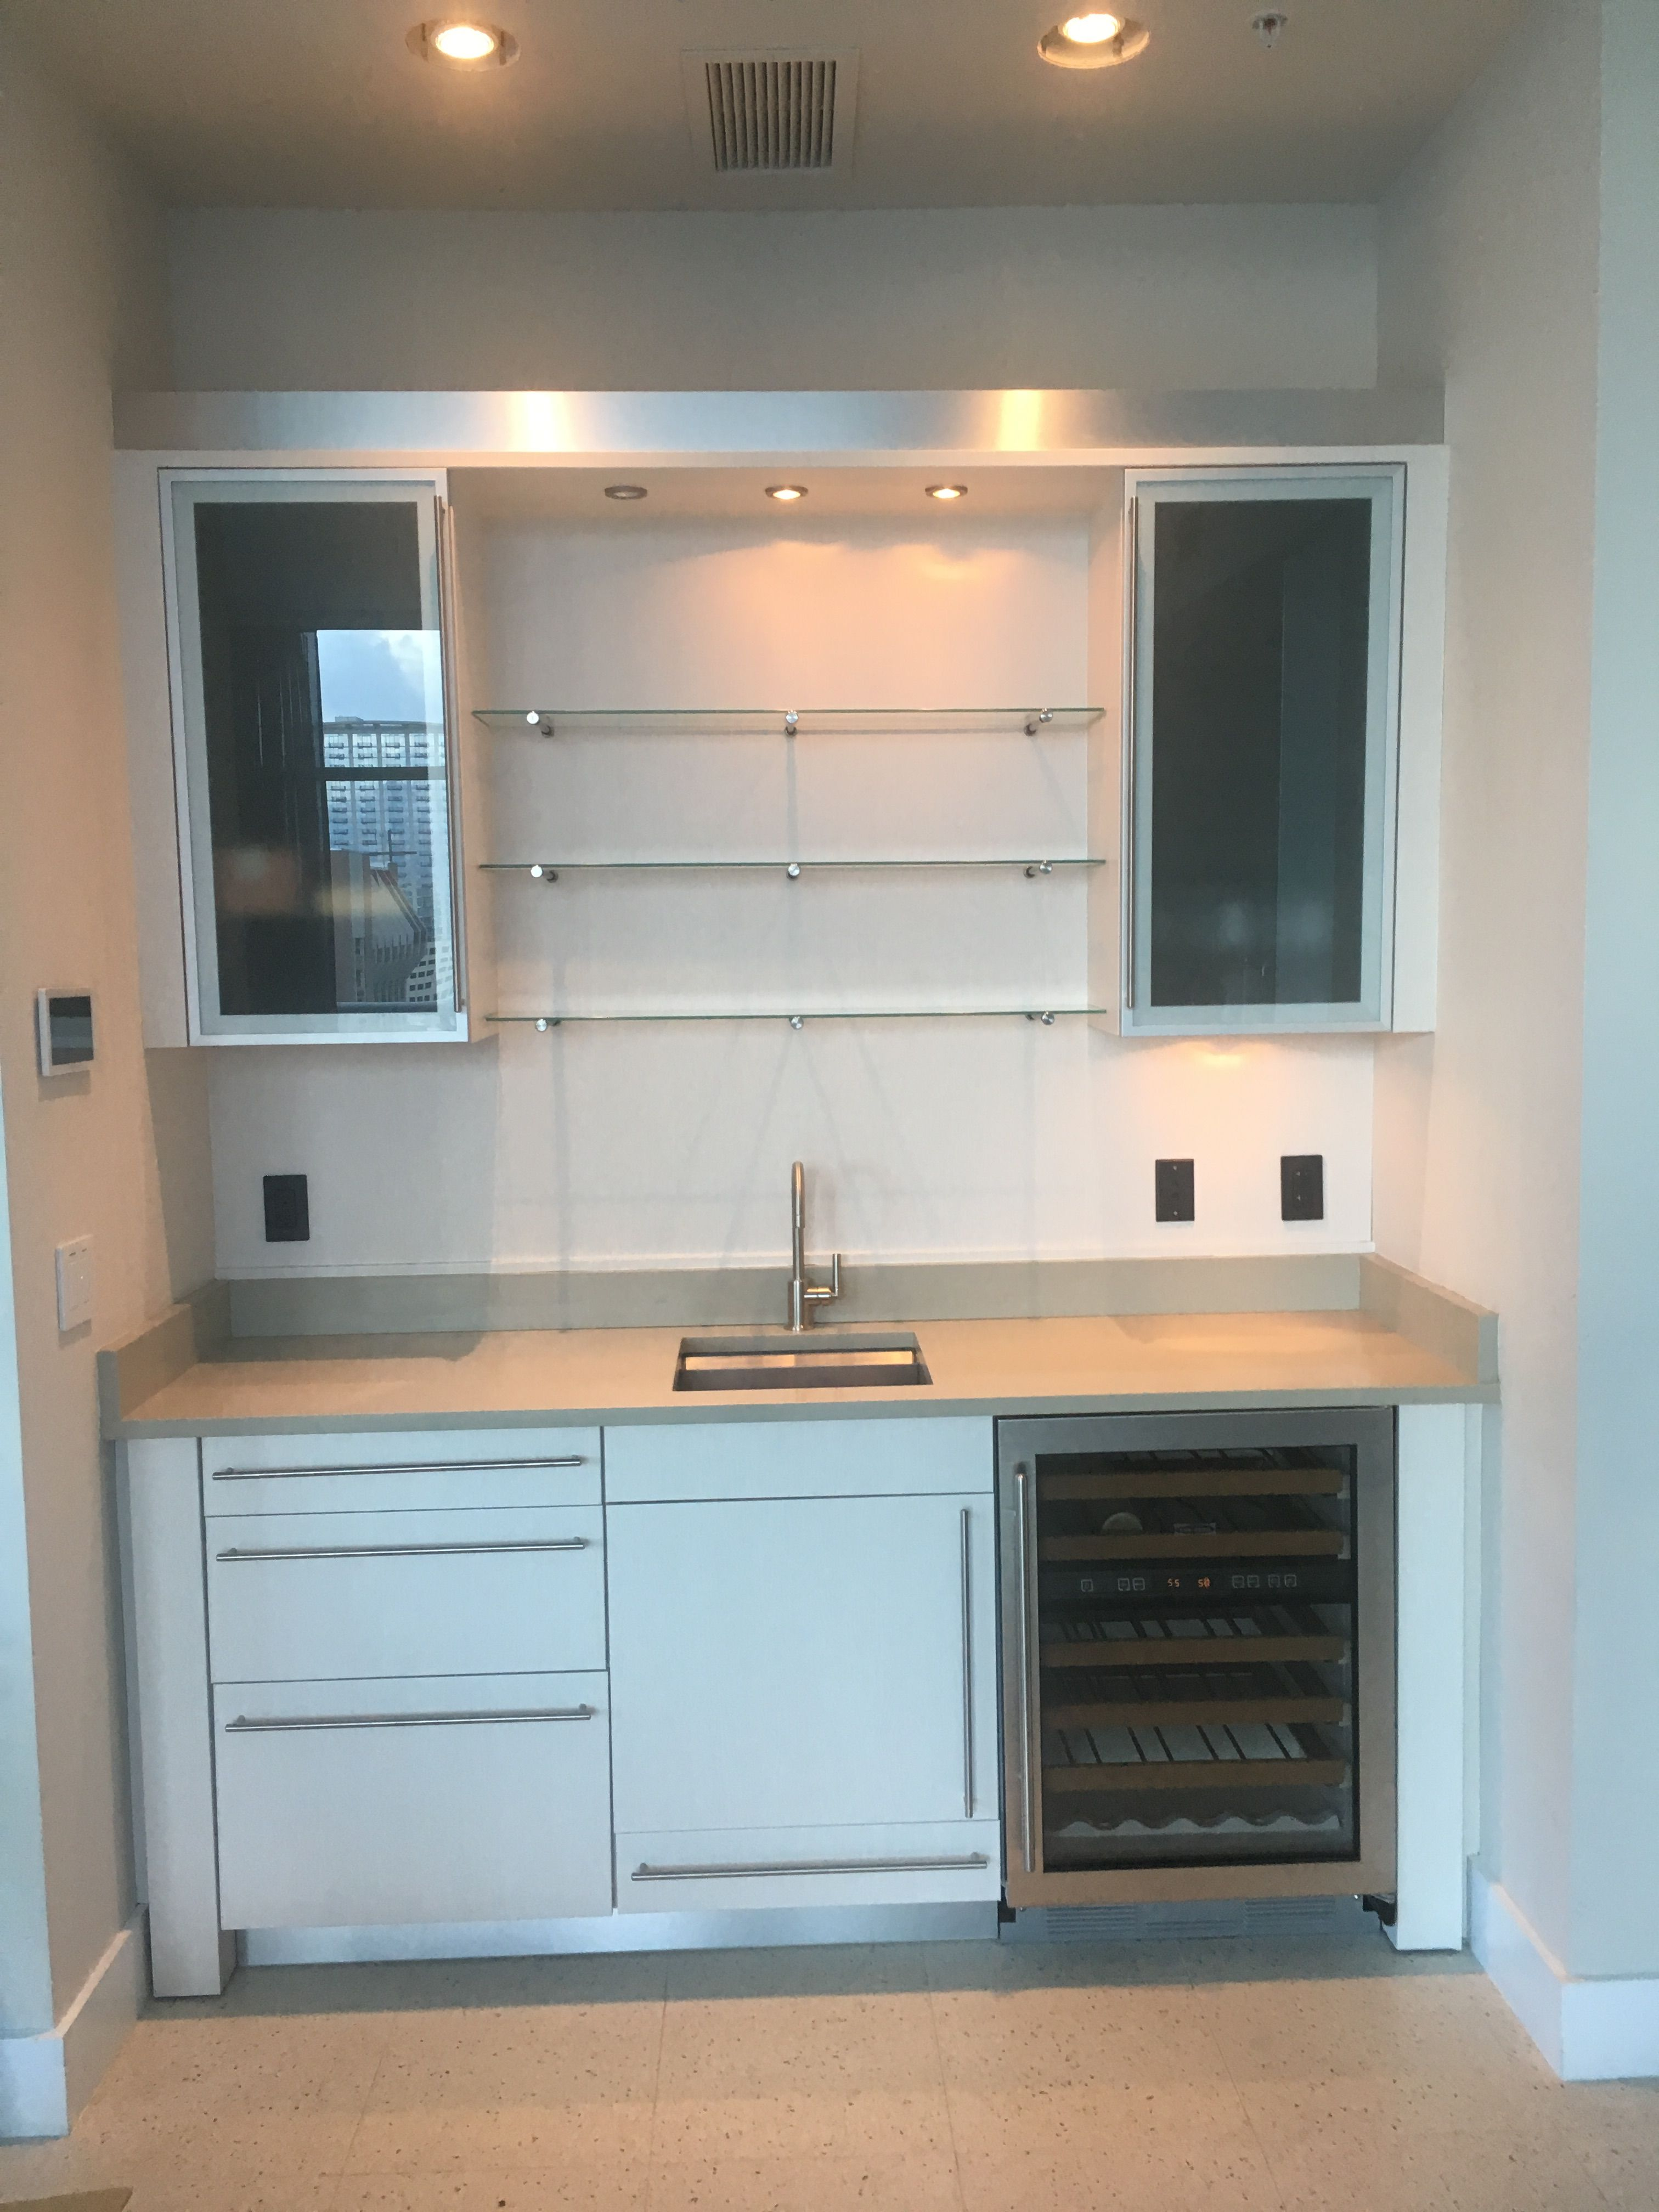 Kitchen Cabinetry Wrap We Used Belbien Vinyl Www Rmwrapsstore